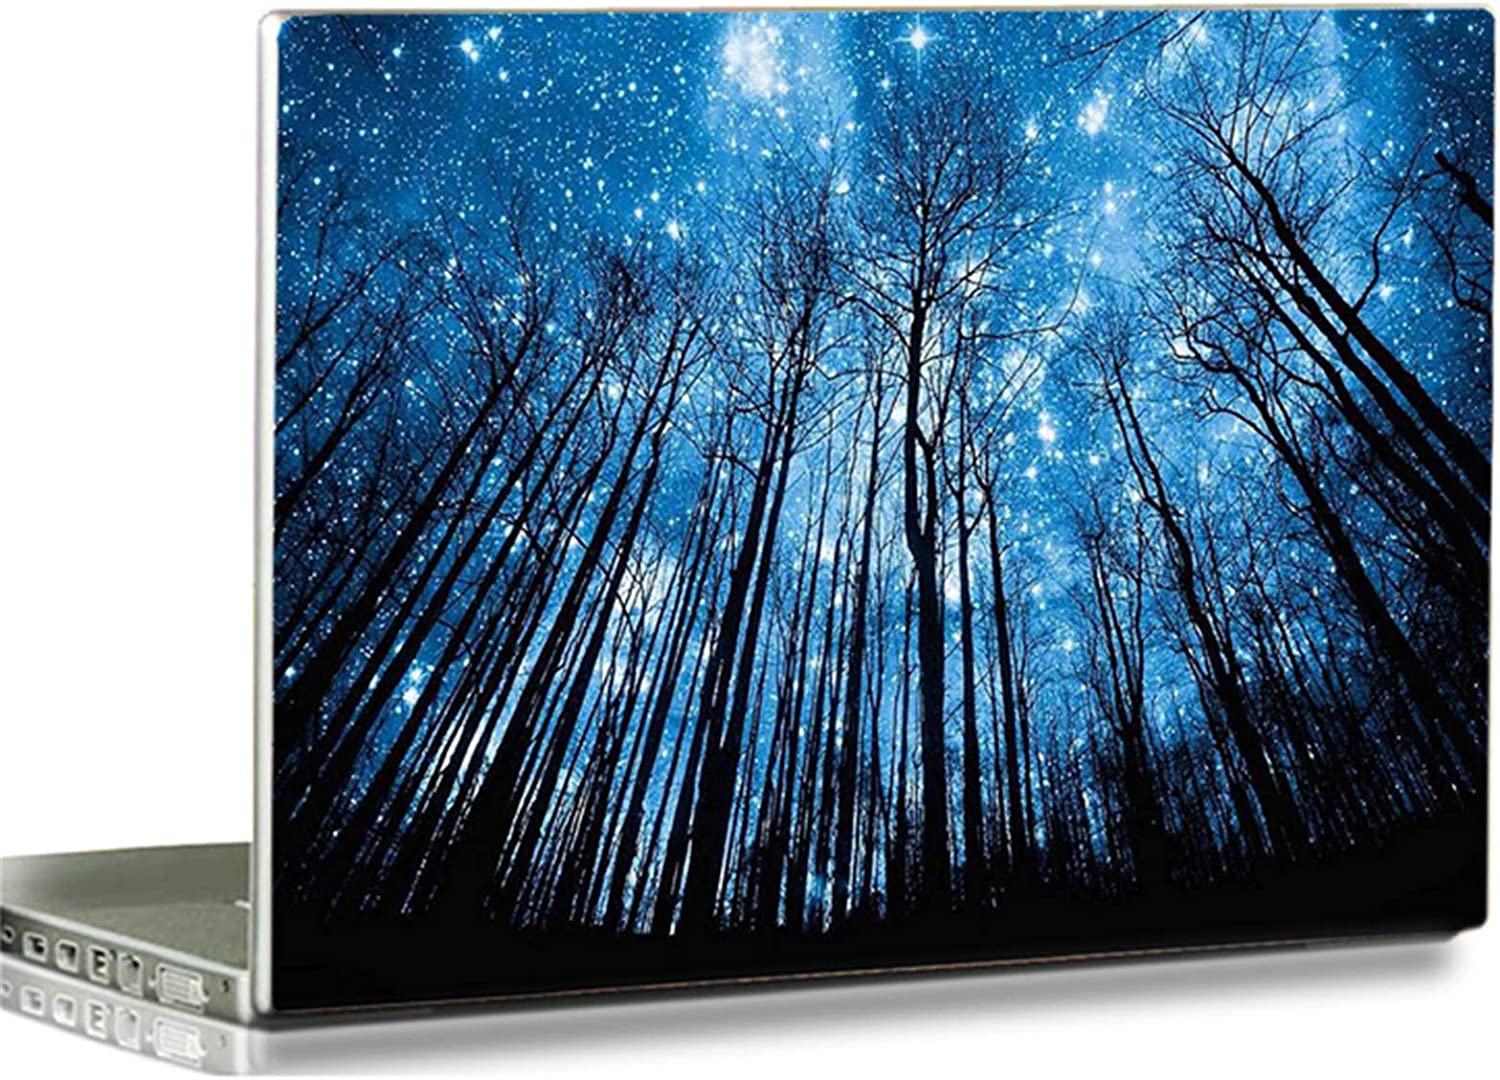 Nice Tree Baocool 15 15.6 inch Laptop Notebook Skin Vinyl Sticker Cover Decal Fits 12 13.3 14 15.6 16 HP Samsung Lenovo Apple Mac Dell Compaq Asus Acer Laptop Notebook PC